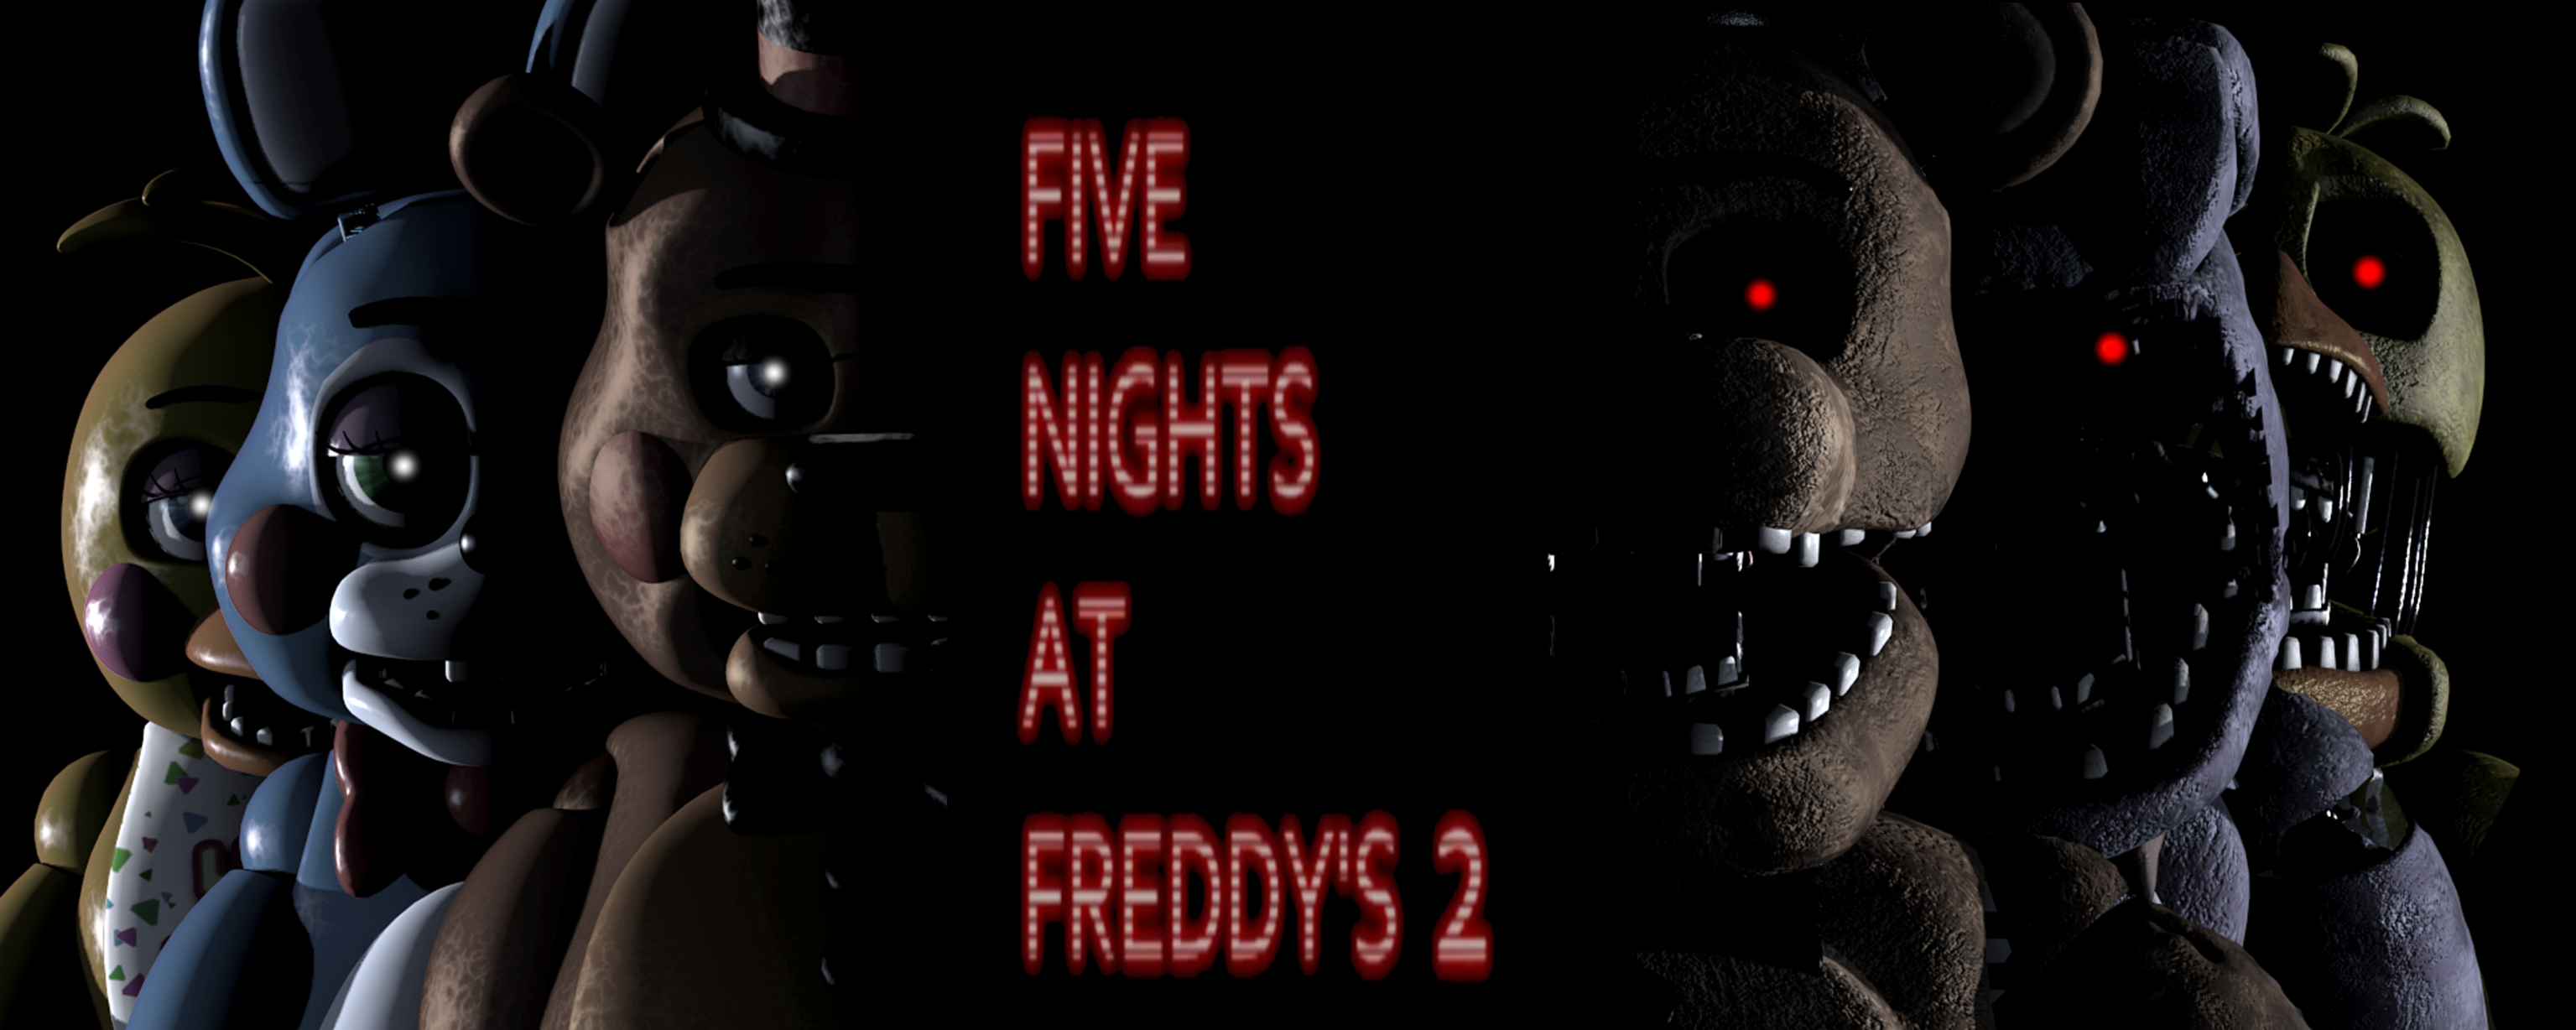 Five nights at freddy s 2 wallpaper by elsa shadow on deviantart